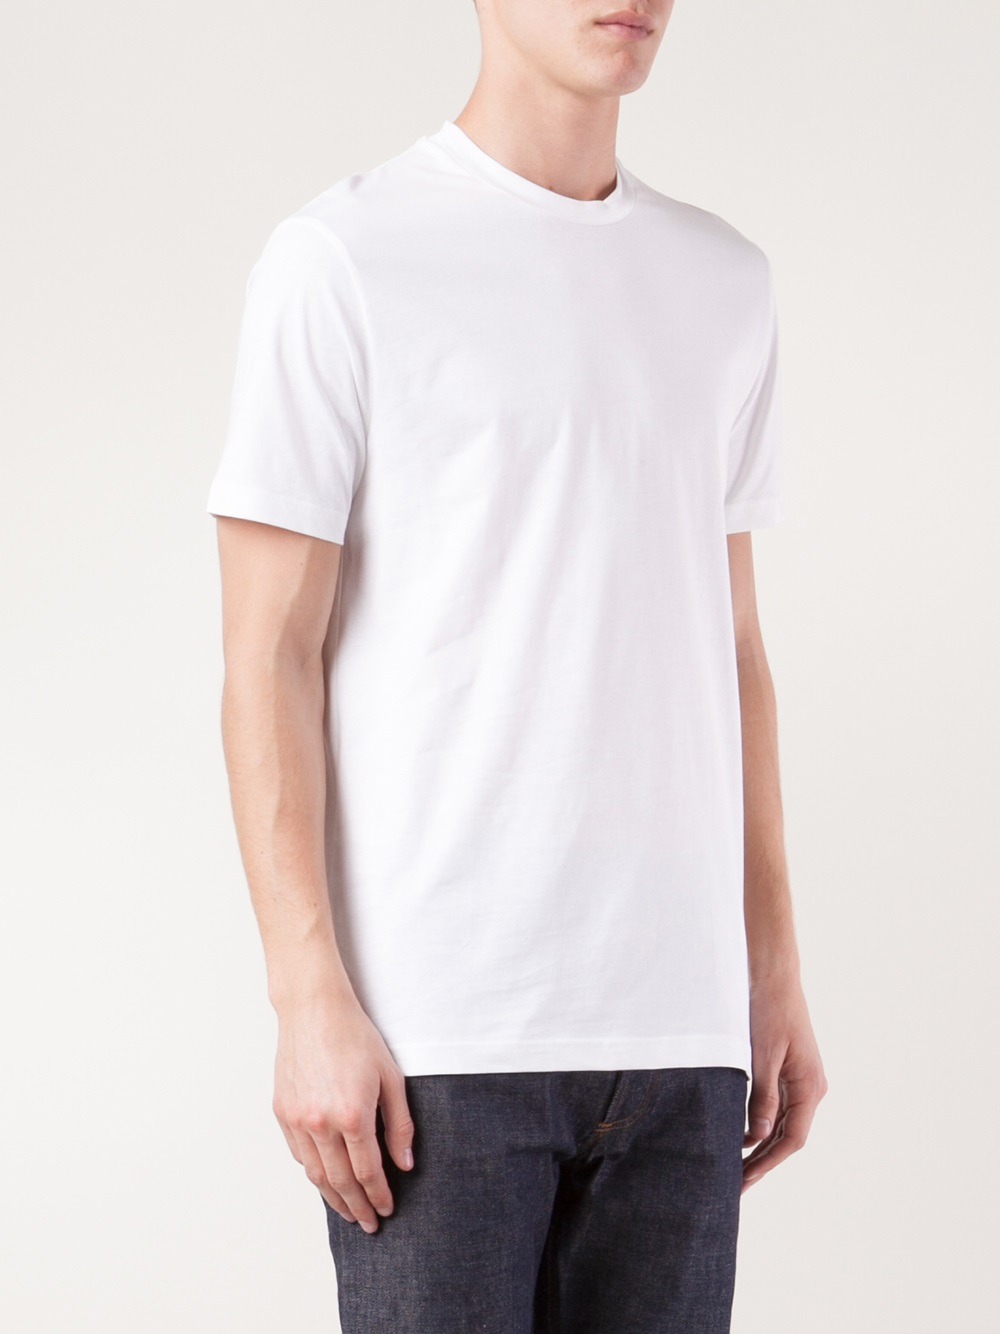 Lyst sunspel crew neck t shirt in white for men for Crew neck white t shirt